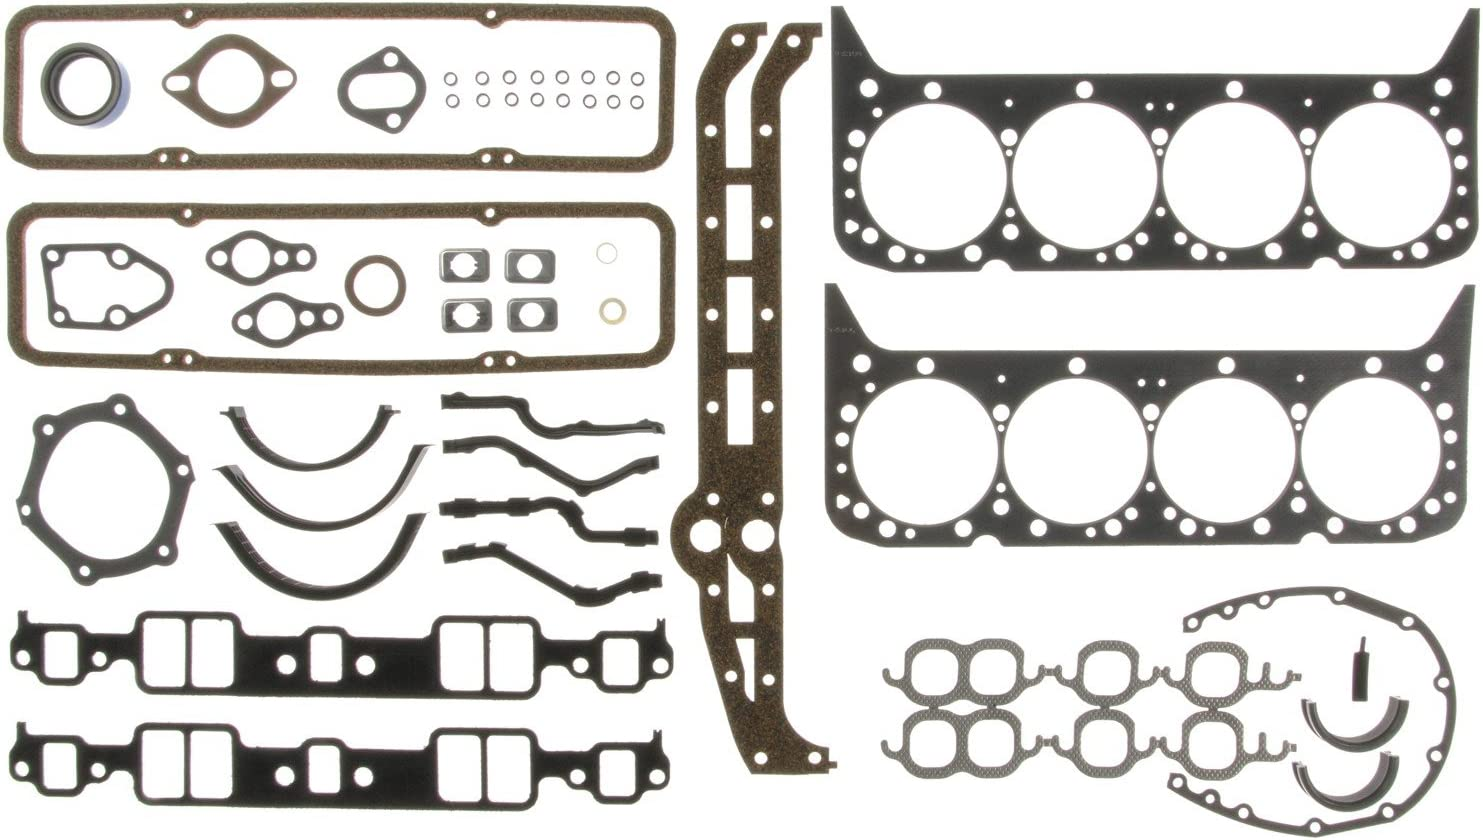 MAHLE Original 95-3033 Engine Kit Gasket Set